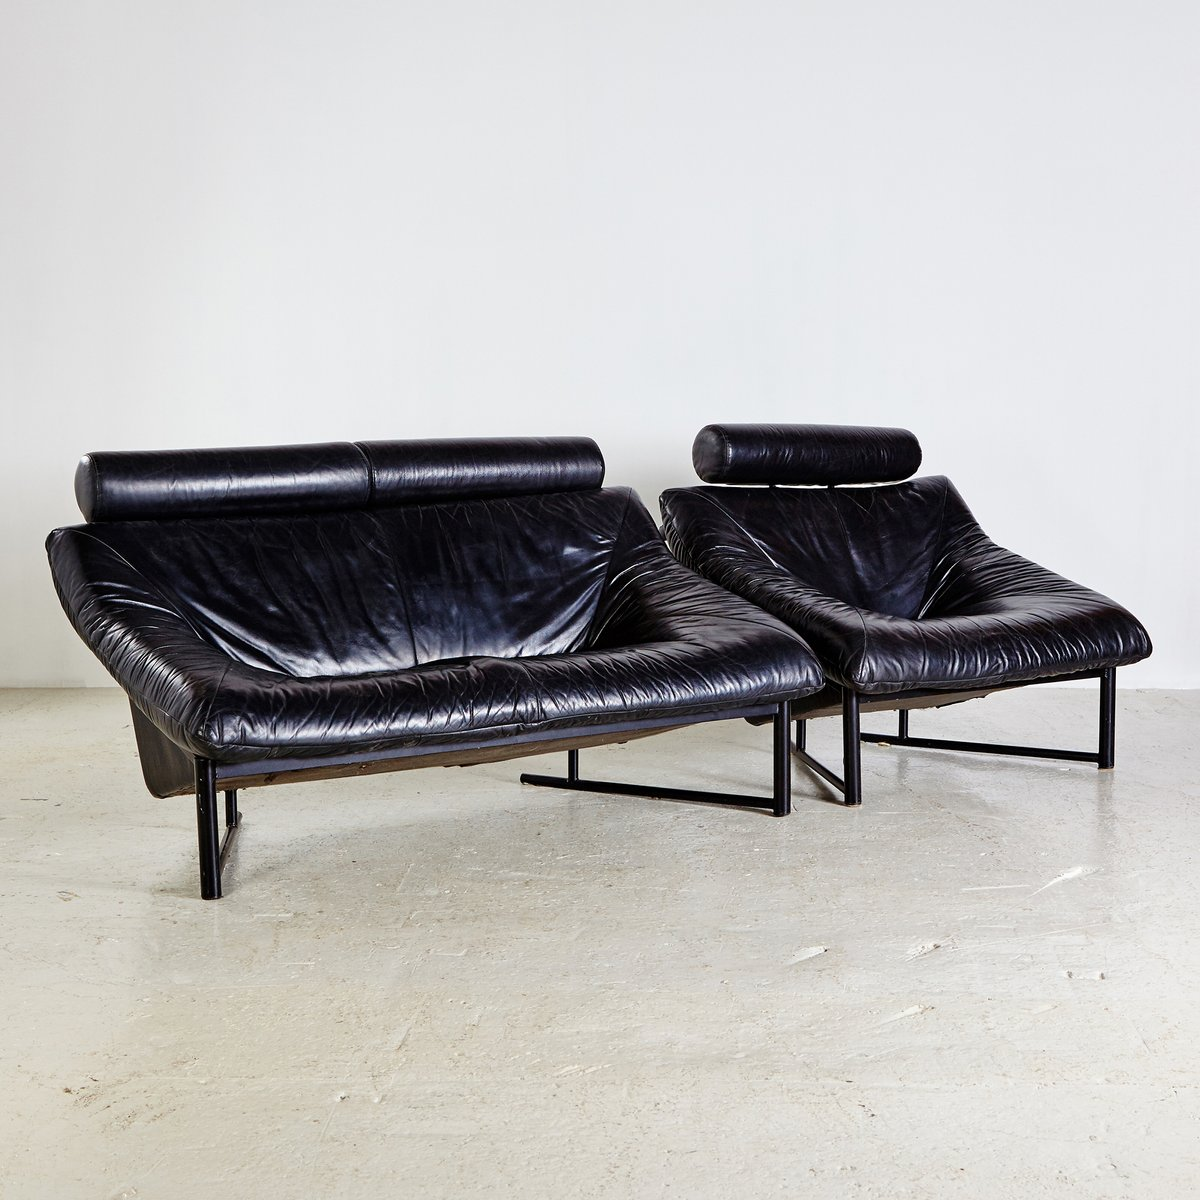 schwarzes vintage leder sofa set 1980er bei pamono kaufen. Black Bedroom Furniture Sets. Home Design Ideas